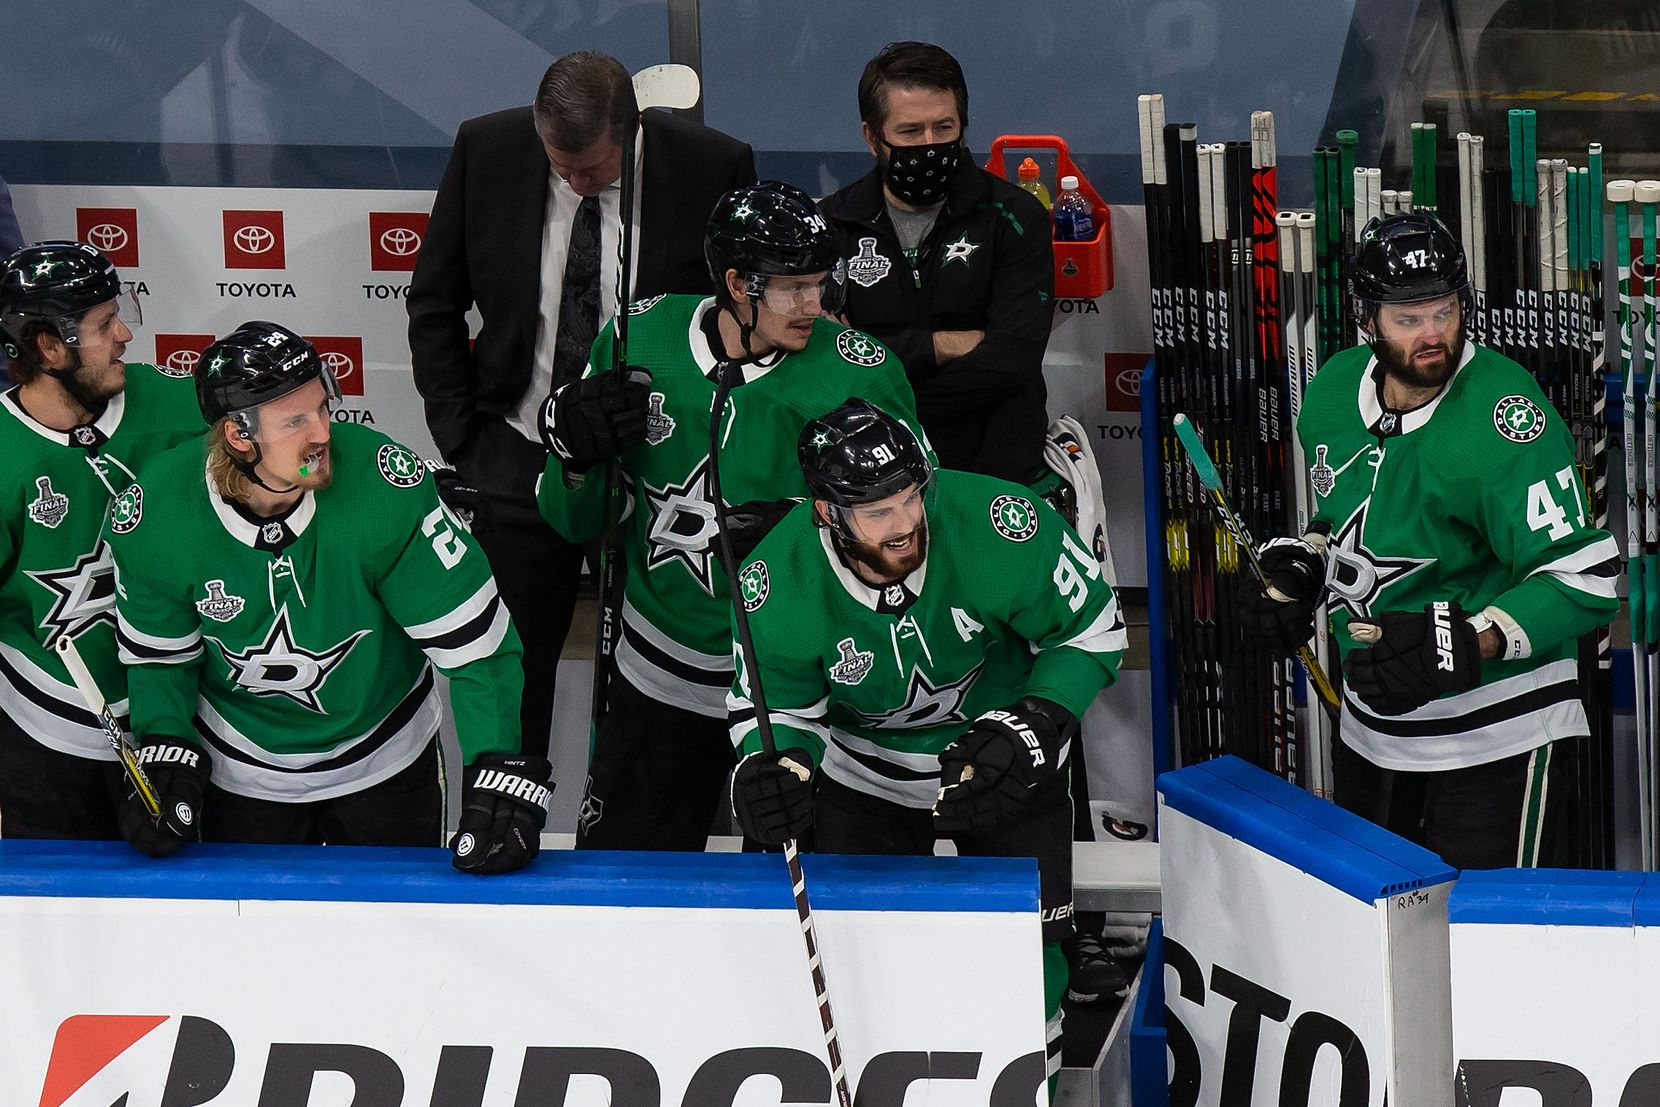 Tyler Seguin (91) of the Dallas Stars celebrates a goal on the bench against the Tampa Bay Lightning during Game Four of the Stanley Cup Final at Rogers Place in Edmonton, Alberta, Canada on Friday, September 25, 2020.